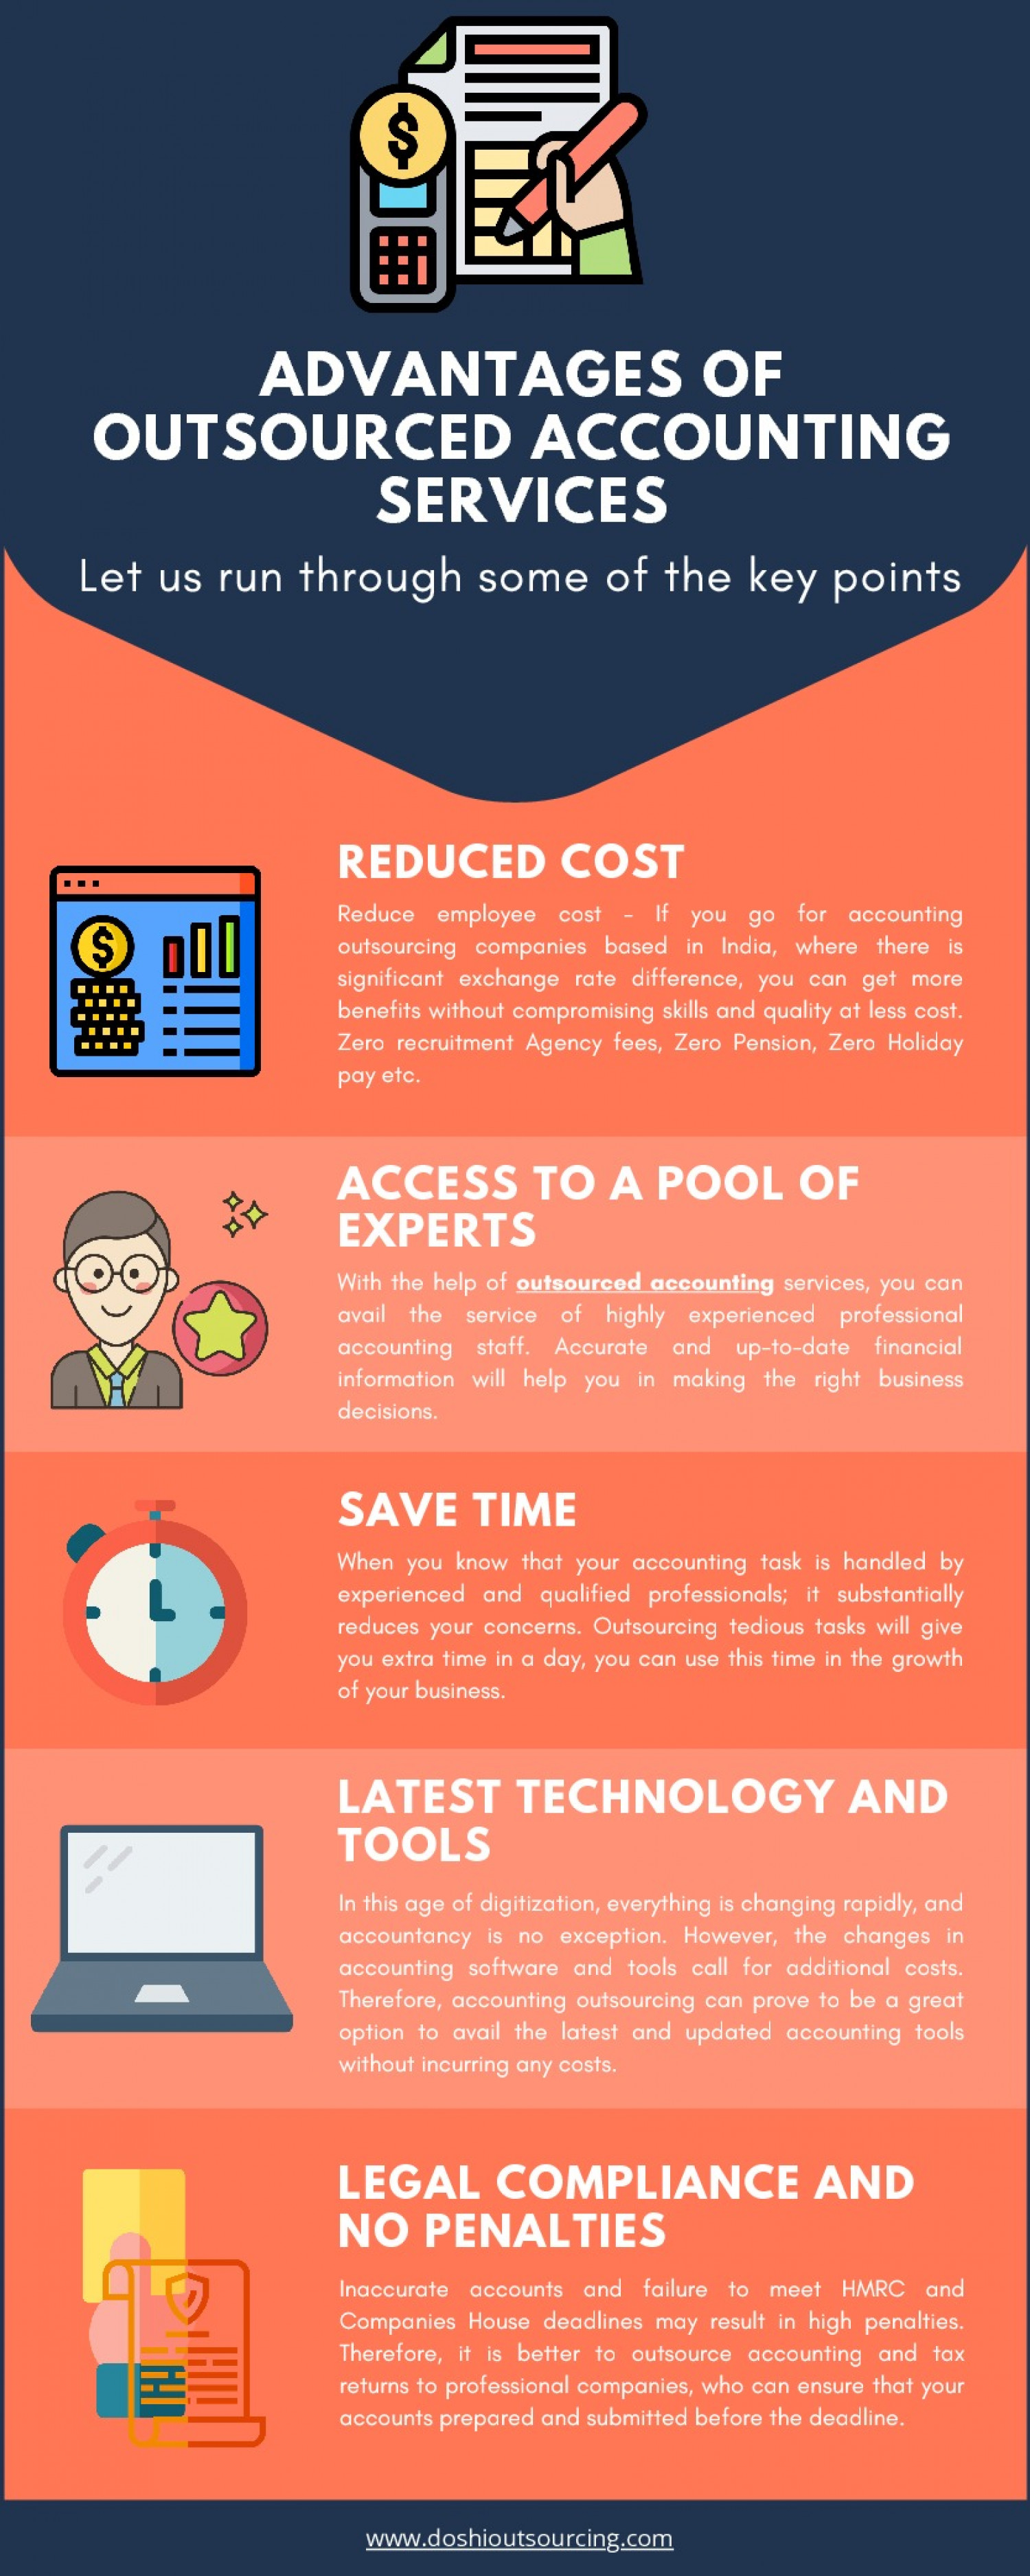 Advantages of Outsourced Accounting Services Infographic